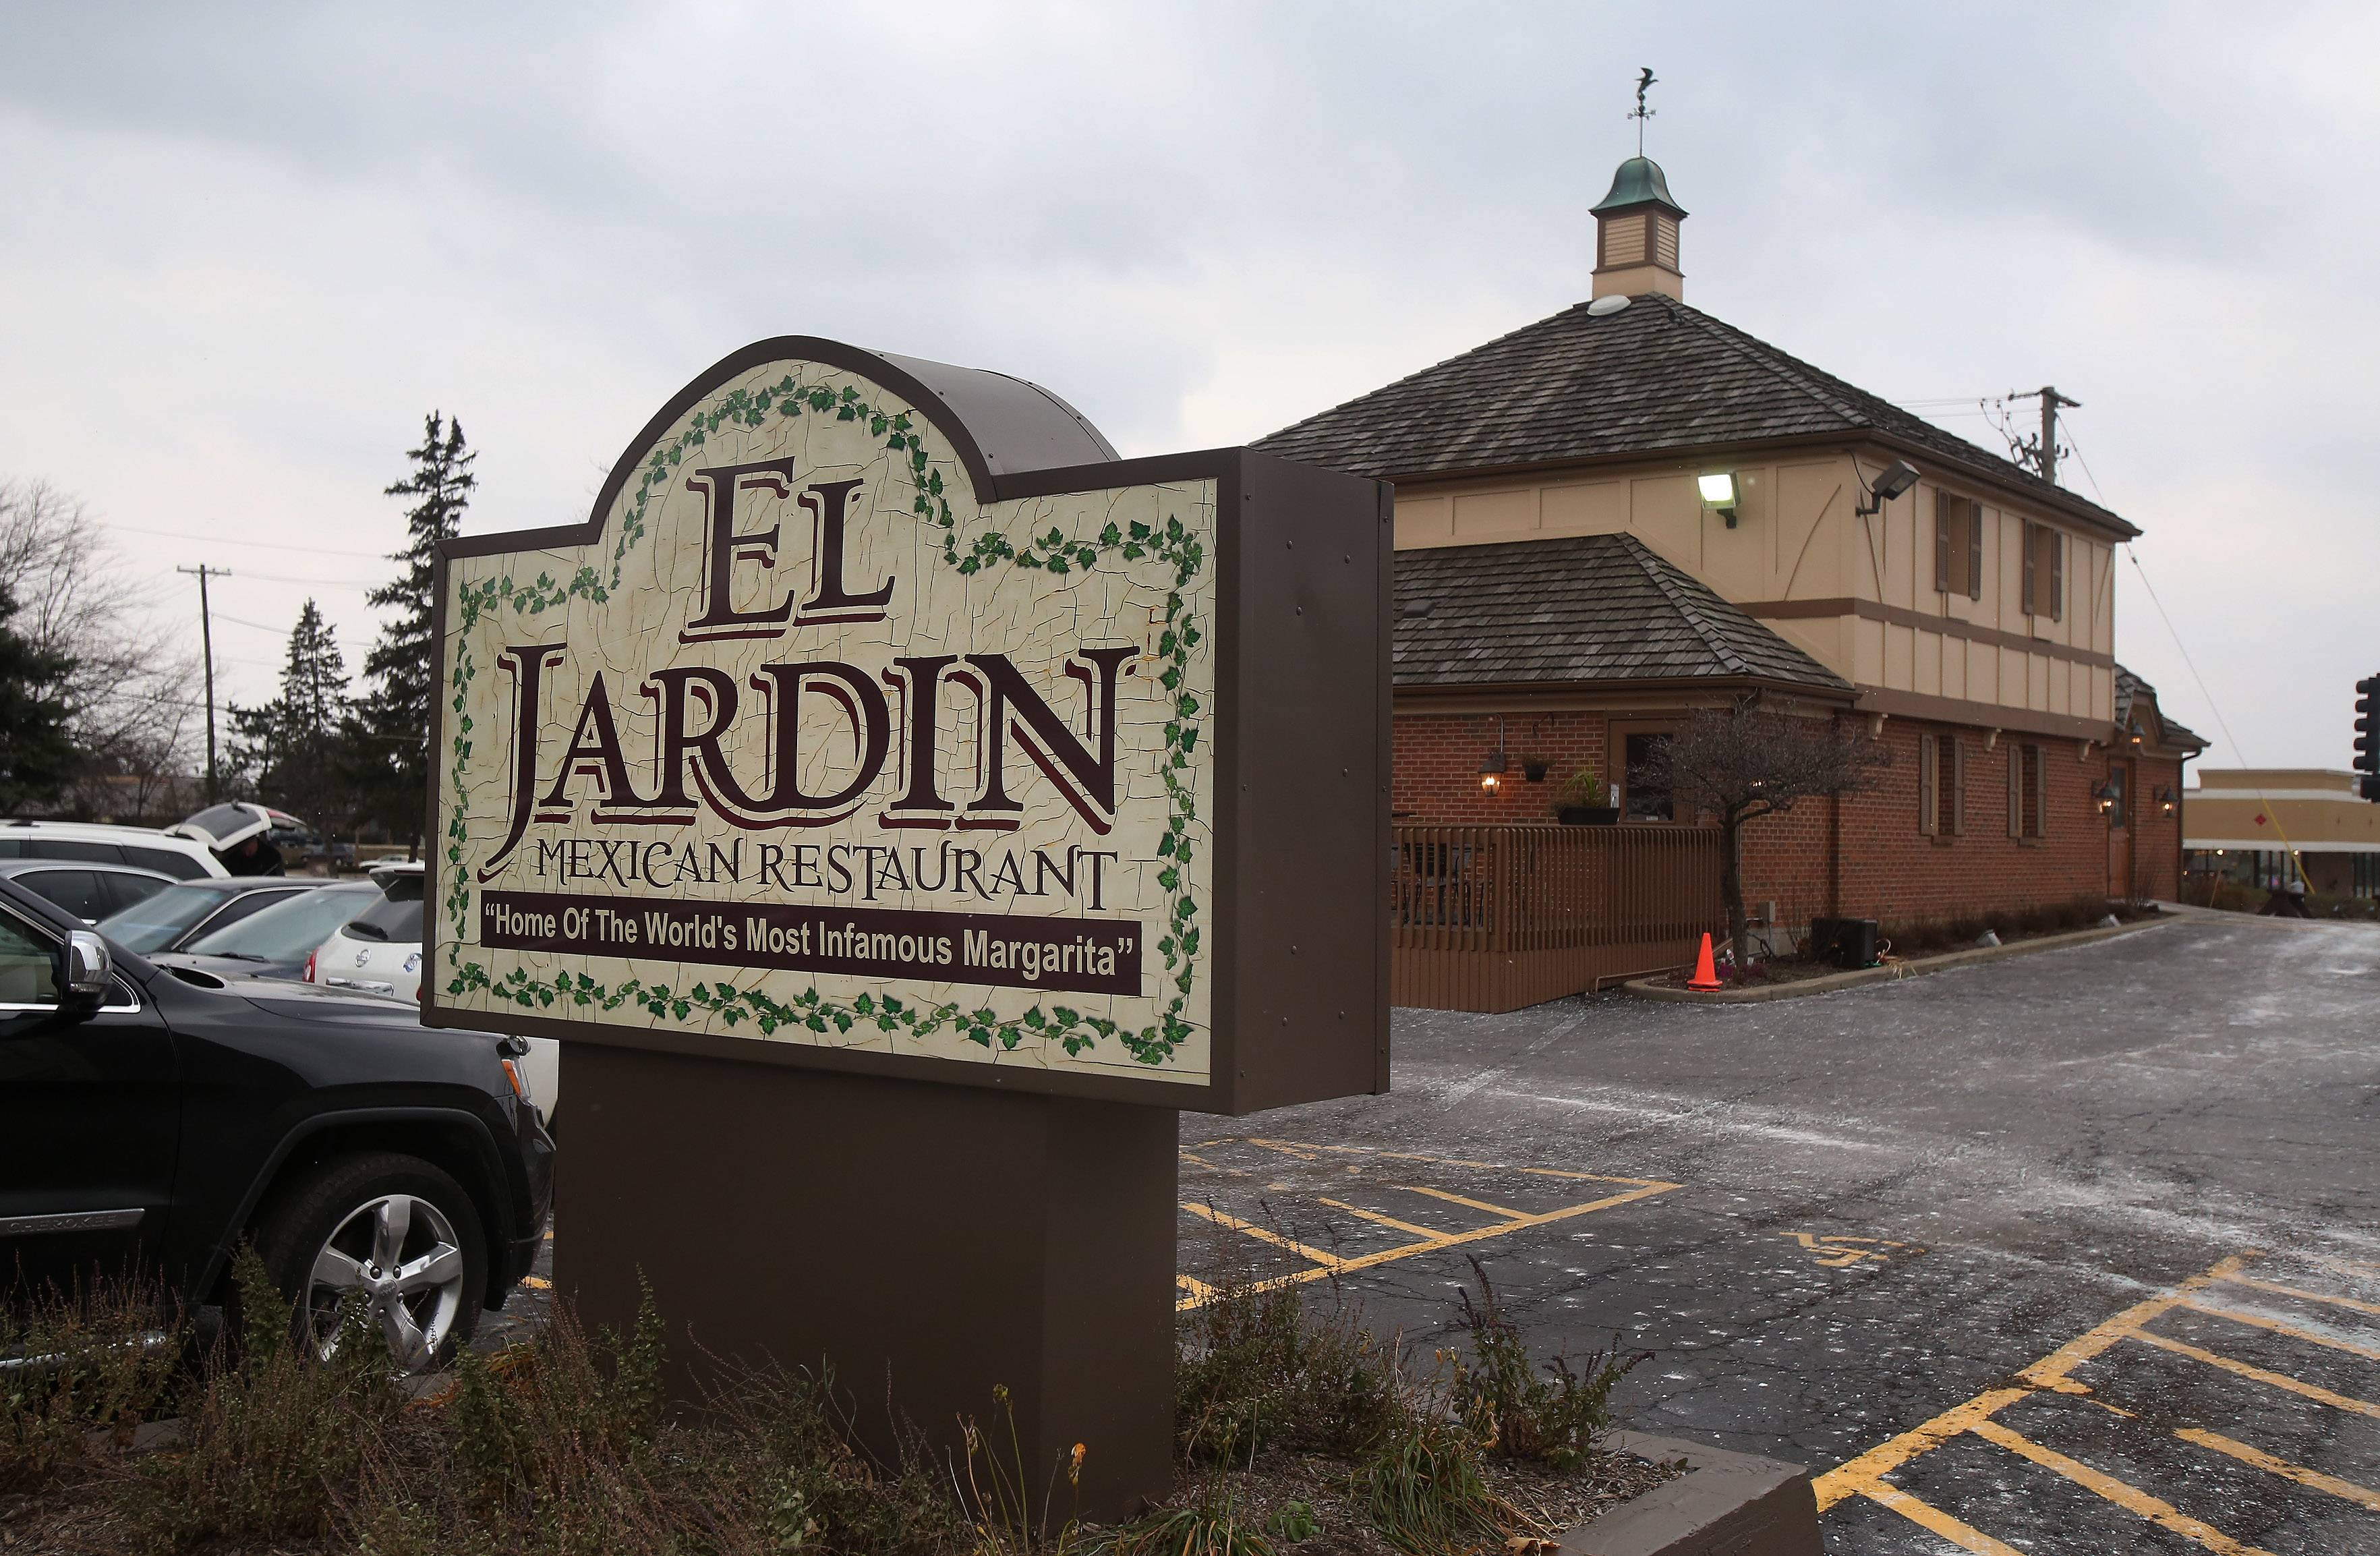 A new restaurant called Carlos Mexican Grill & Seafood 4 will open in the former El Jardin Mexican Restaurant at 500 Ela Road in Lake Zurich.